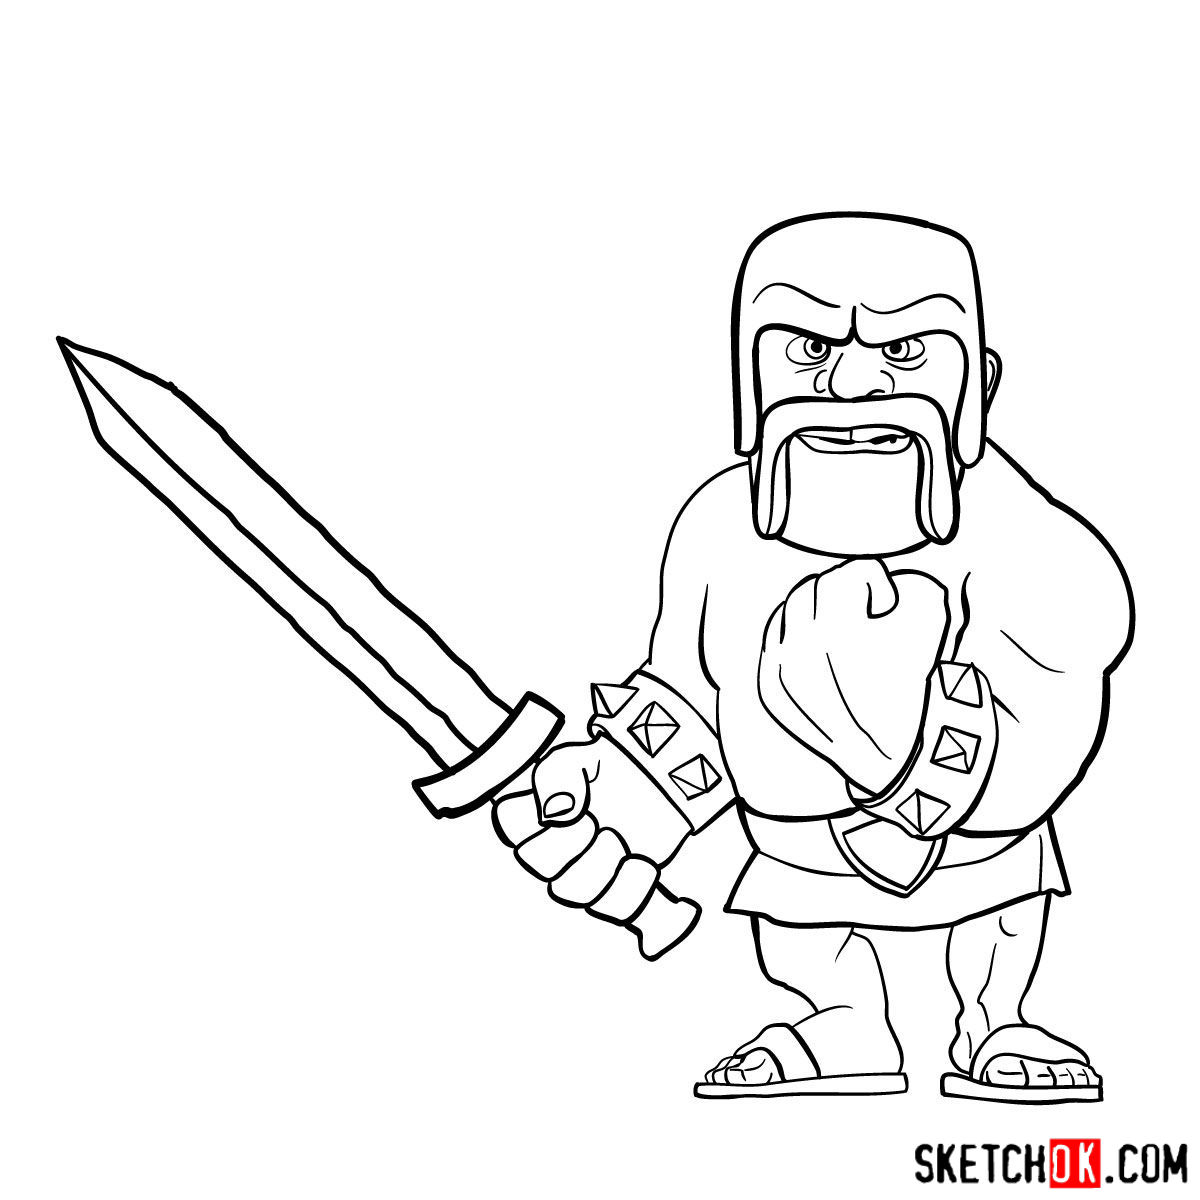 how to draw a barbarian how to draw clash of clans barbarian king drawingnow draw how barbarian a to